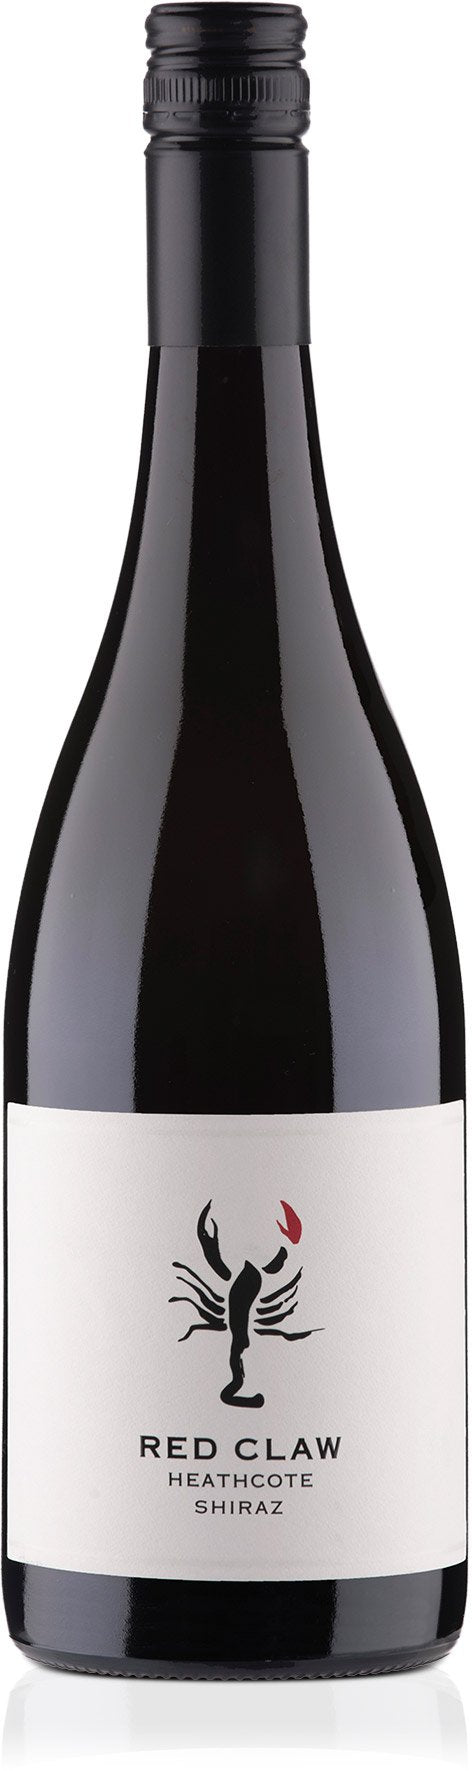 Red Claw-2015 Red Claw Shiraz-Pubble Alcohol Delivery